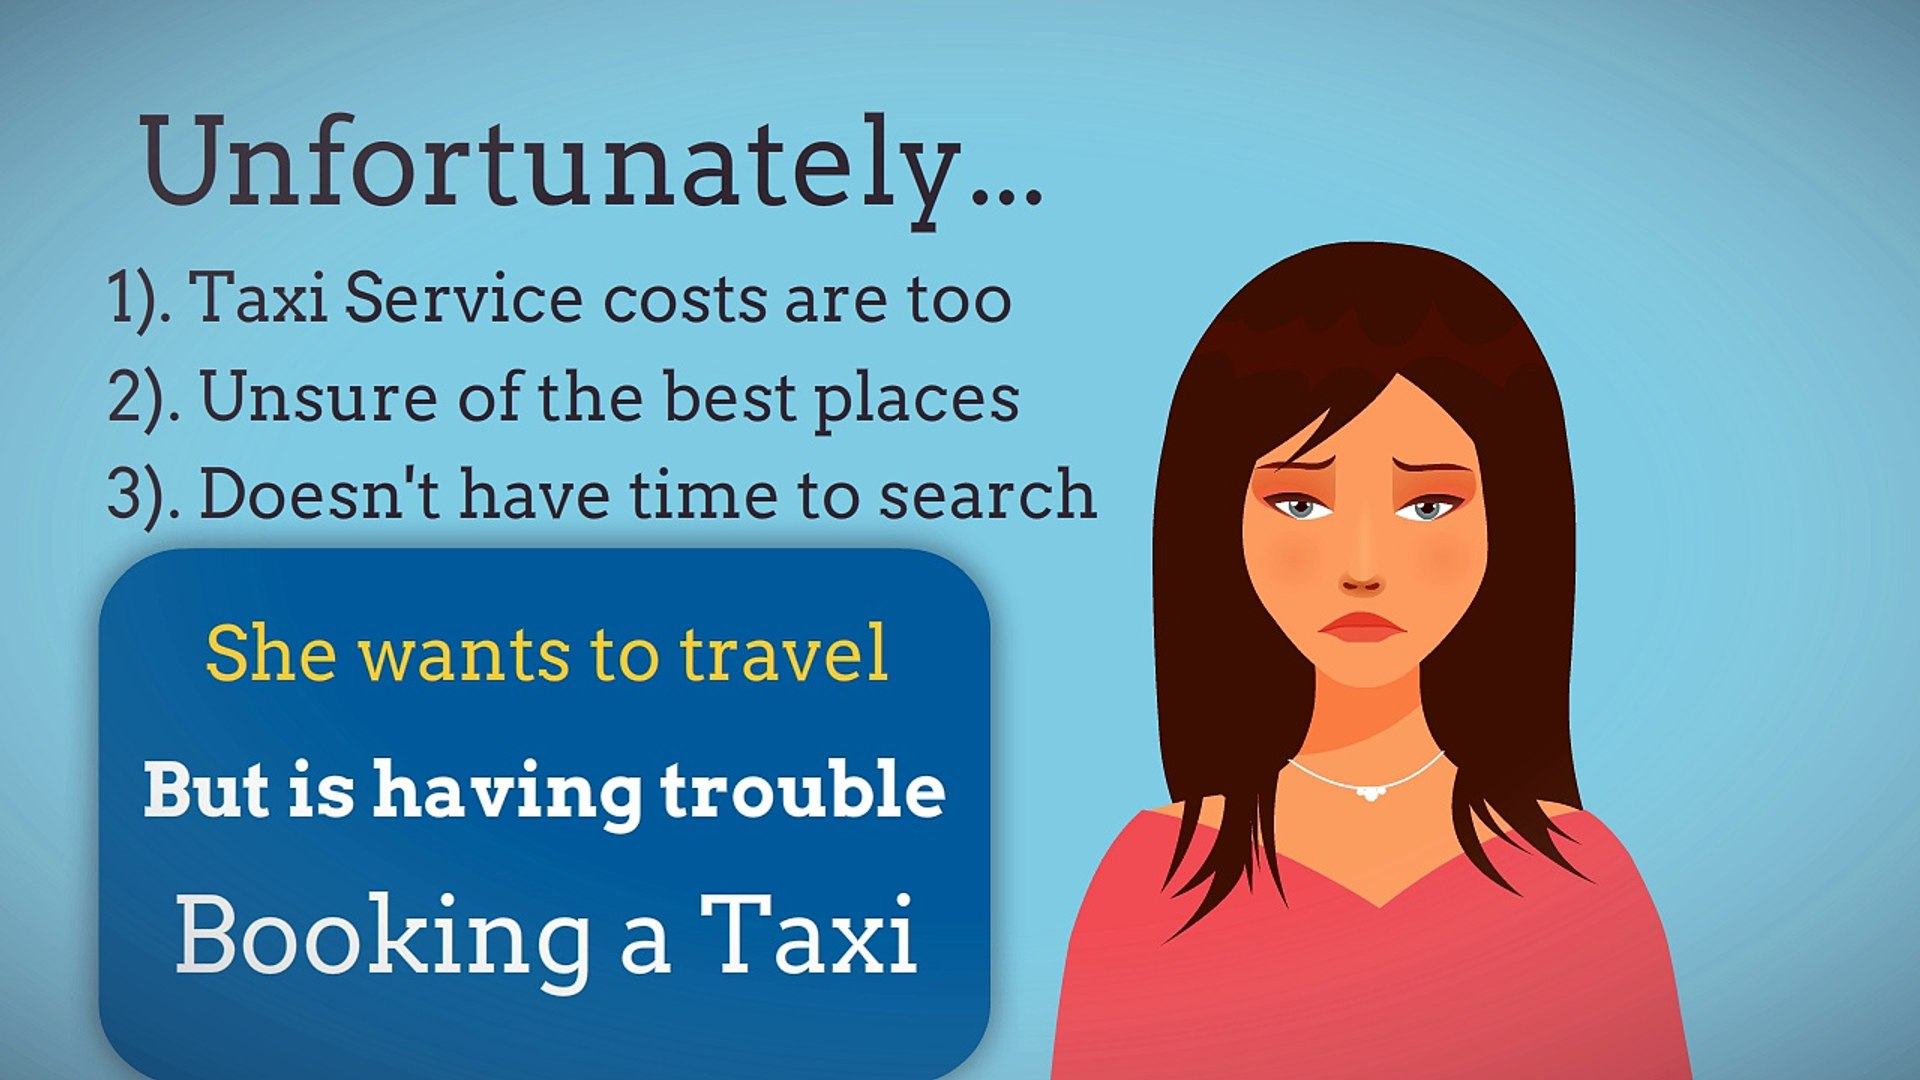 Global Travel Service - travel agents & services - global travel experts